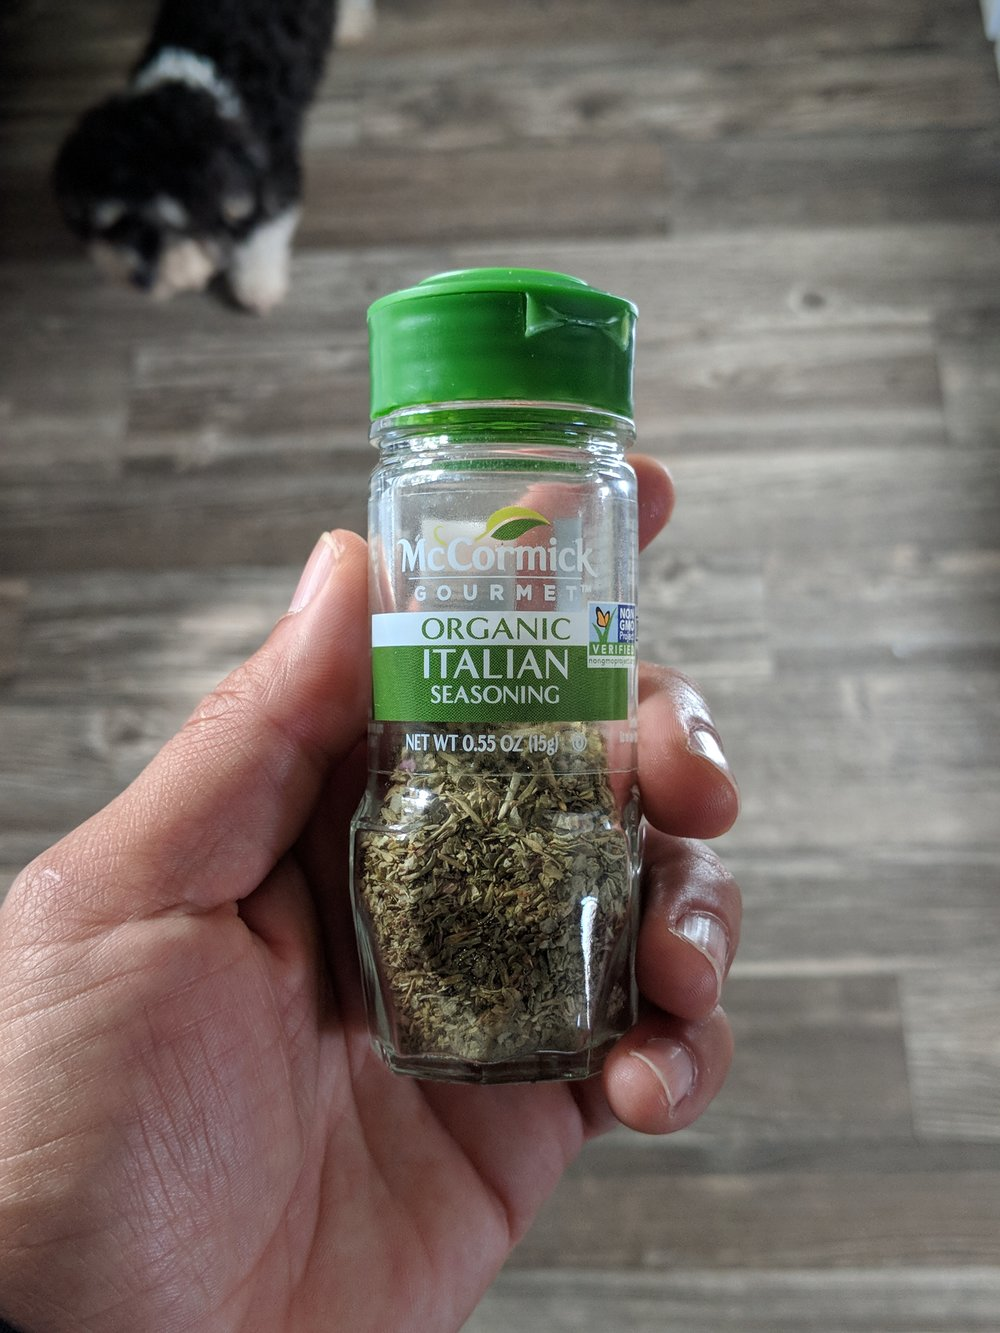 Italian Seasoning - A blend of common spices used in Italian dishes, like any pasta sauce.